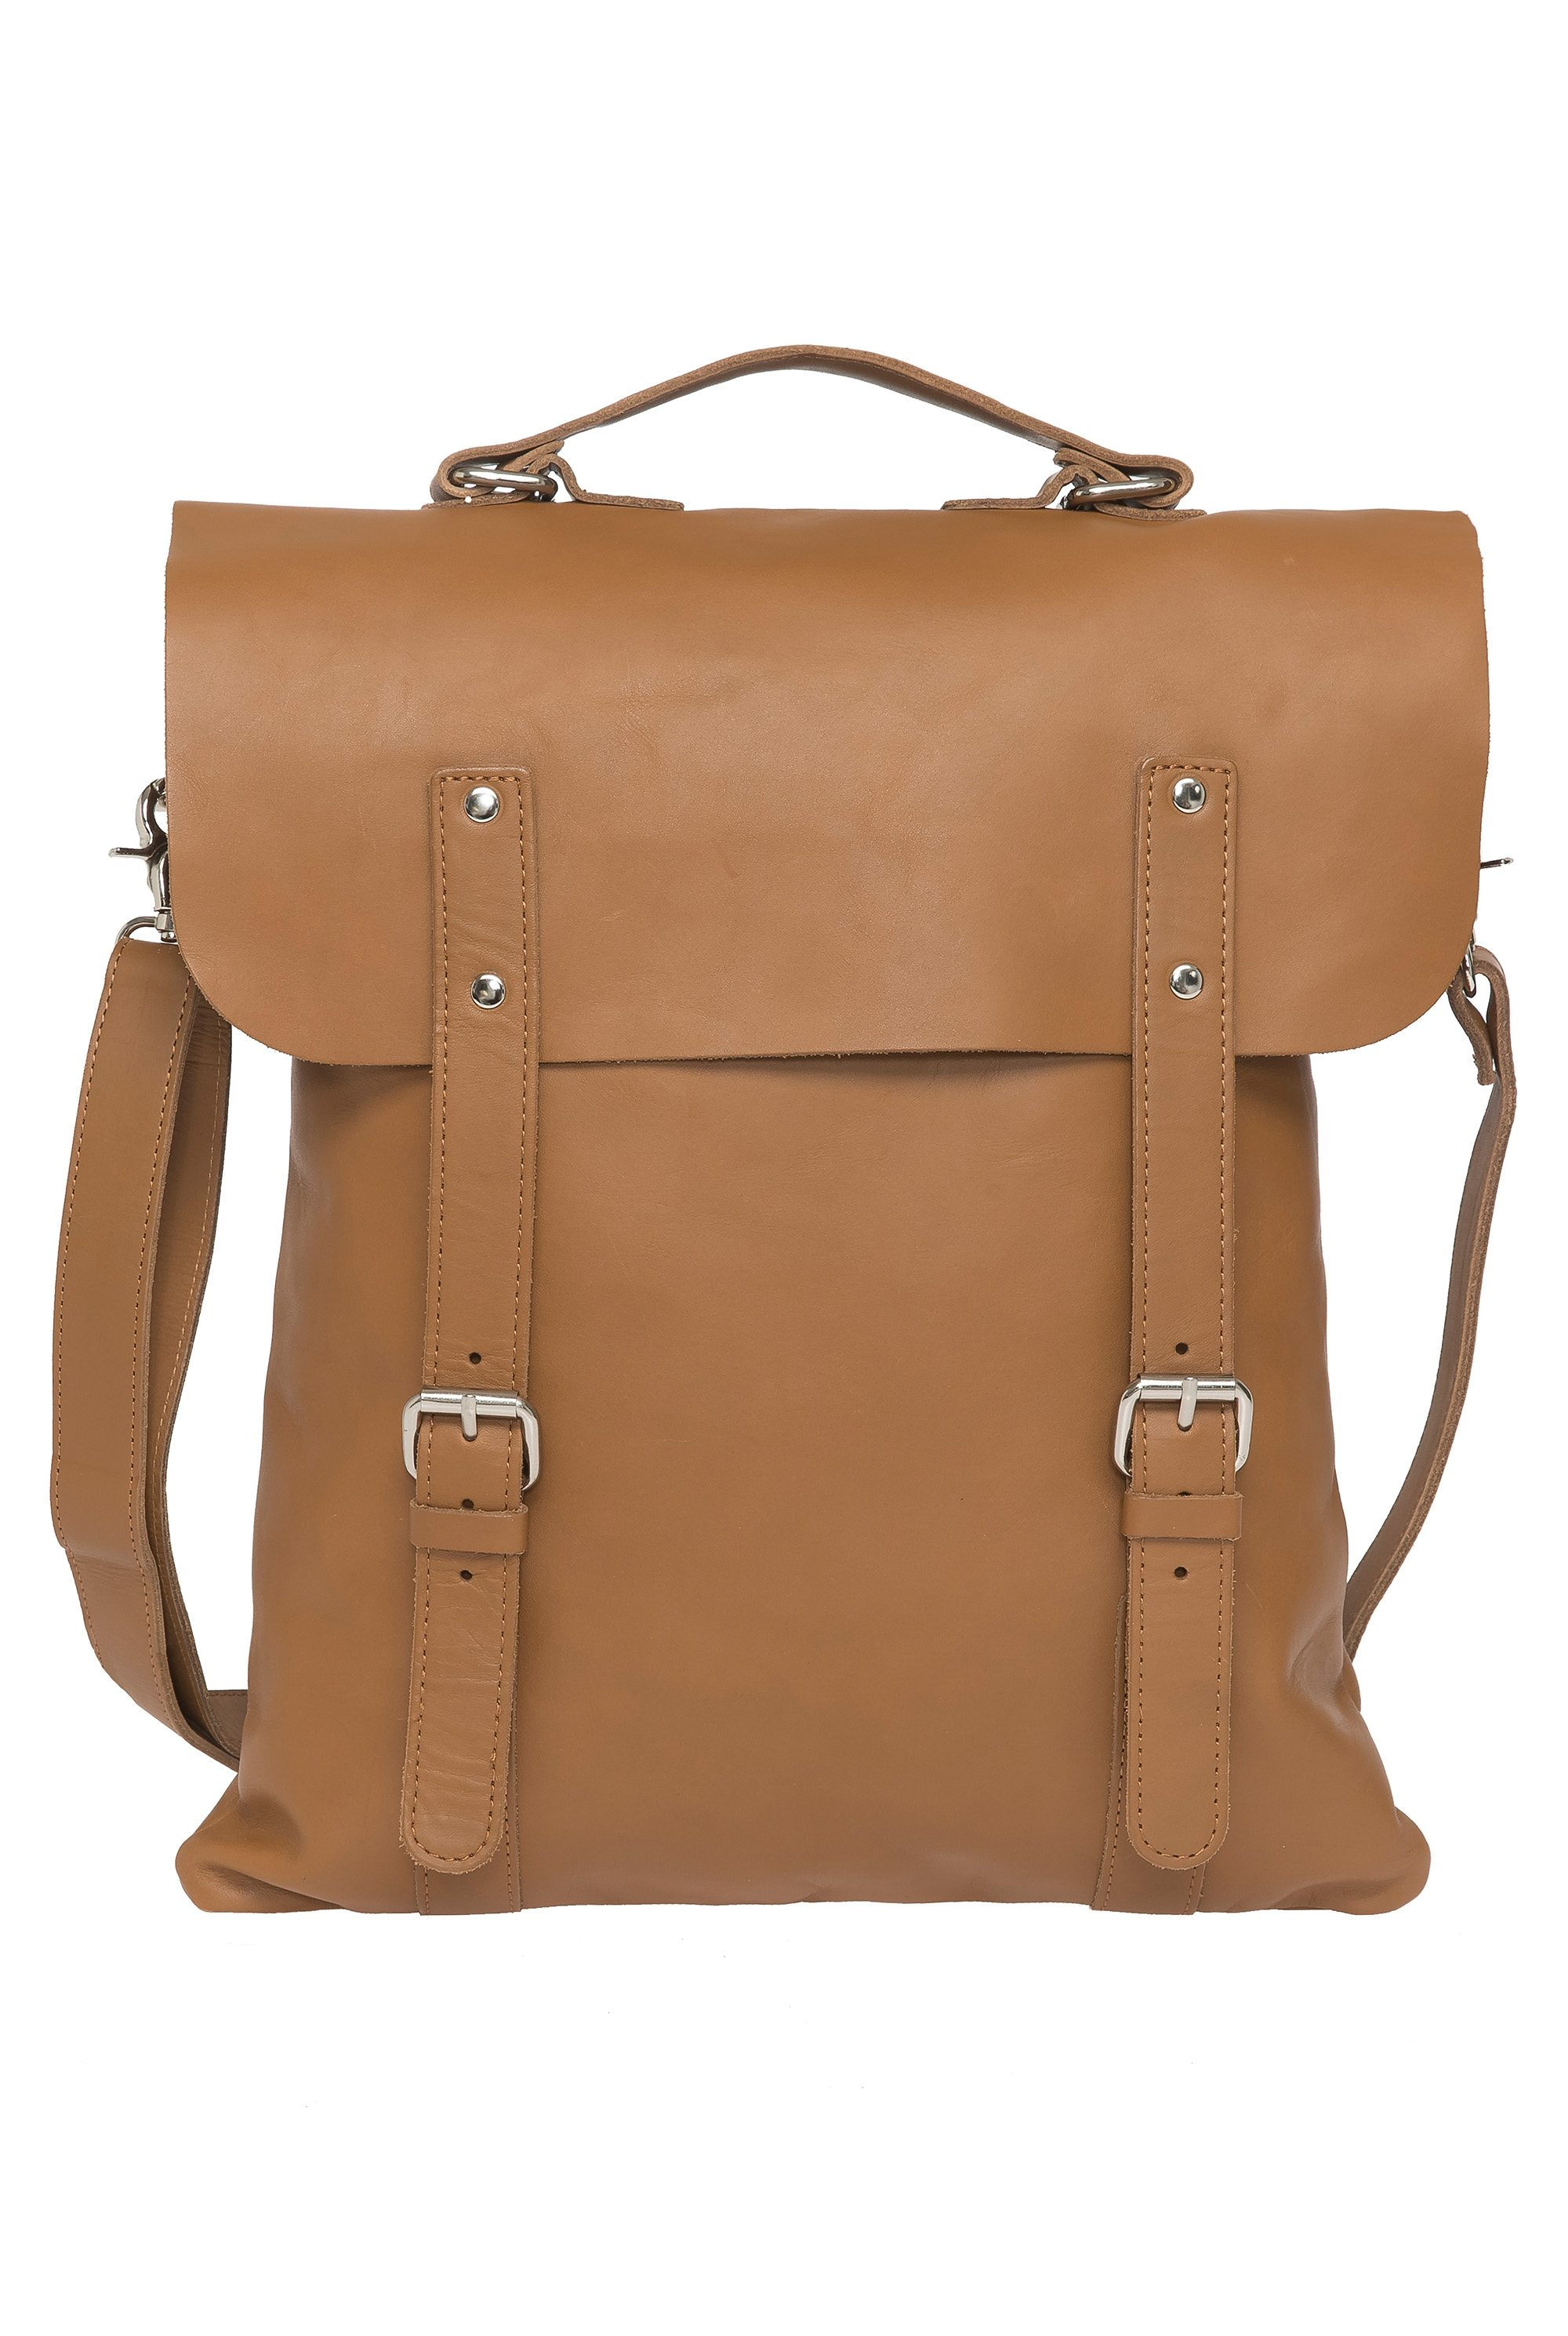 Enter Rucksack, »Messenger Tote, Tan Leather«